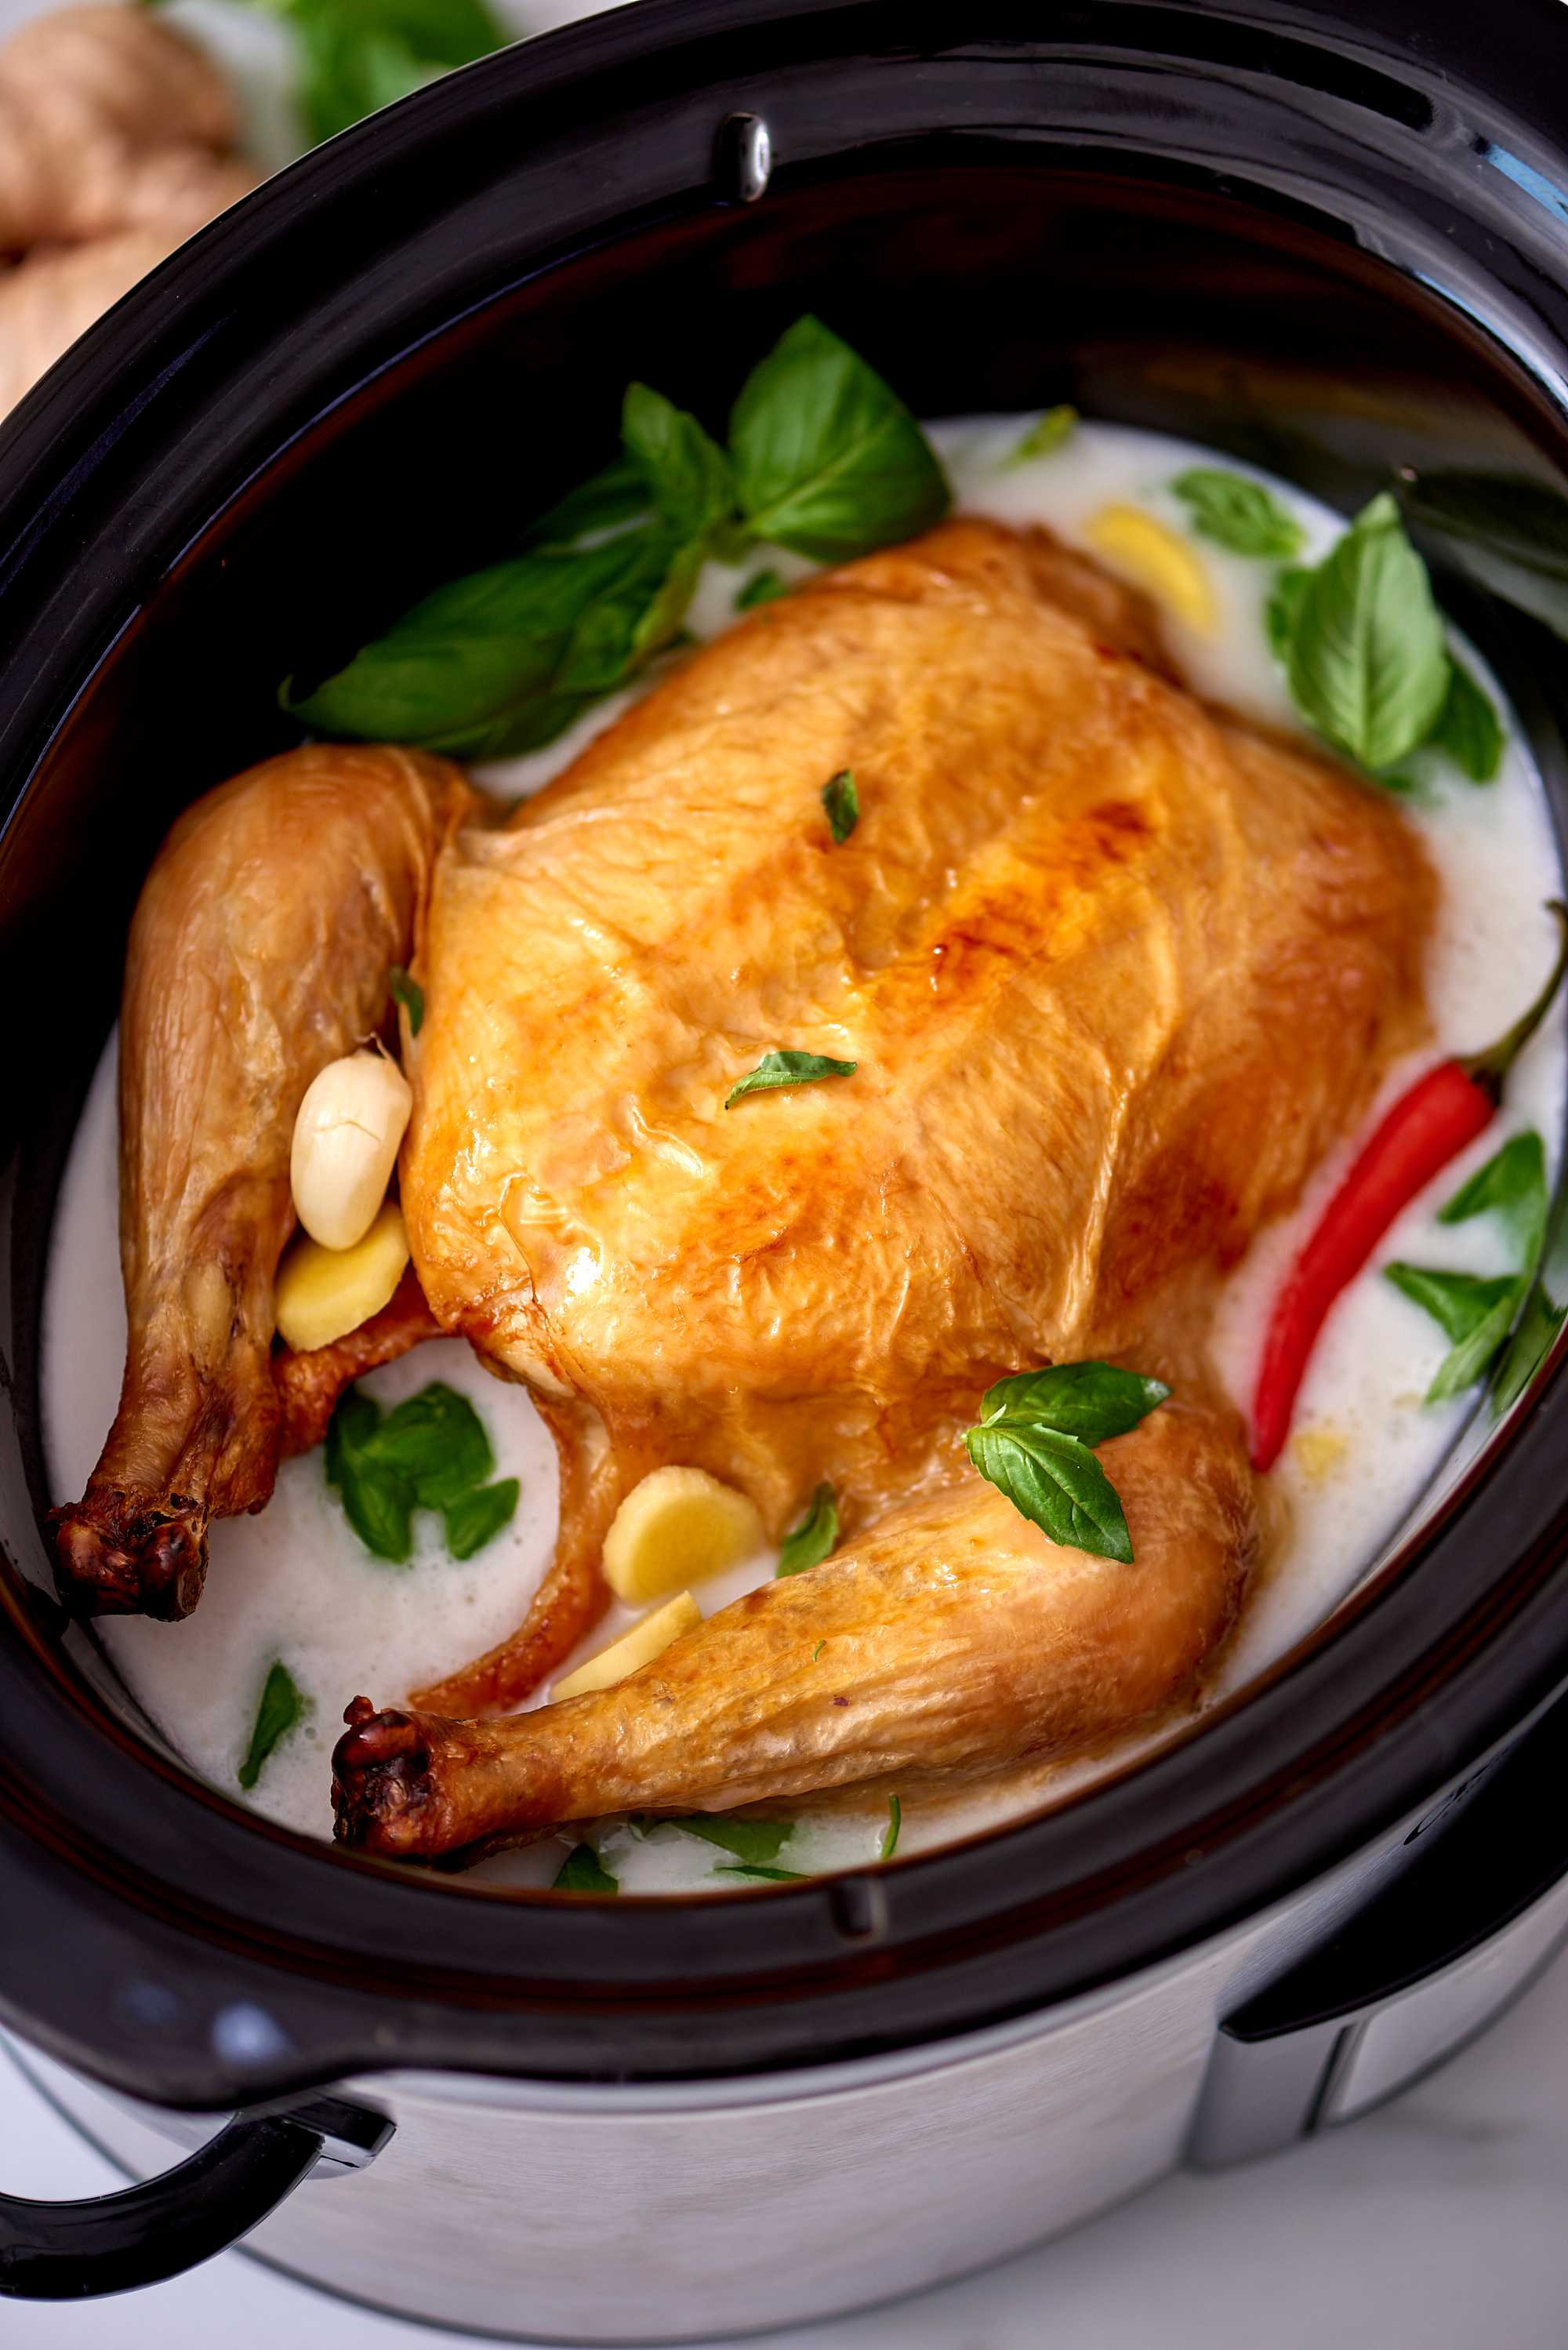 17 Slow Cooker Dinners That Will Make Your House Smell Amazing | Kitchn